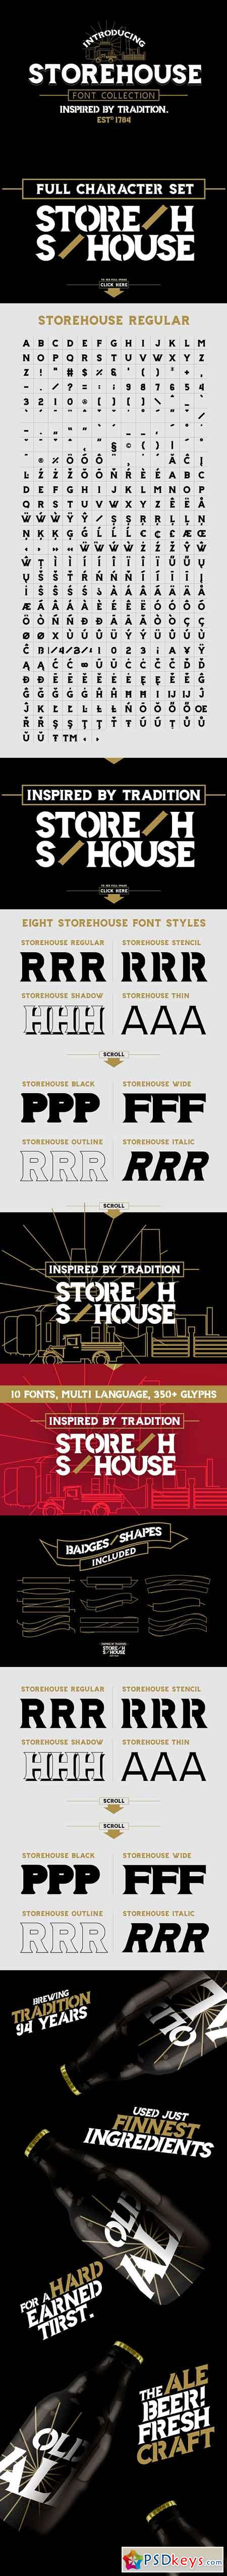 Storehouse Font + Vector shapes 2683495